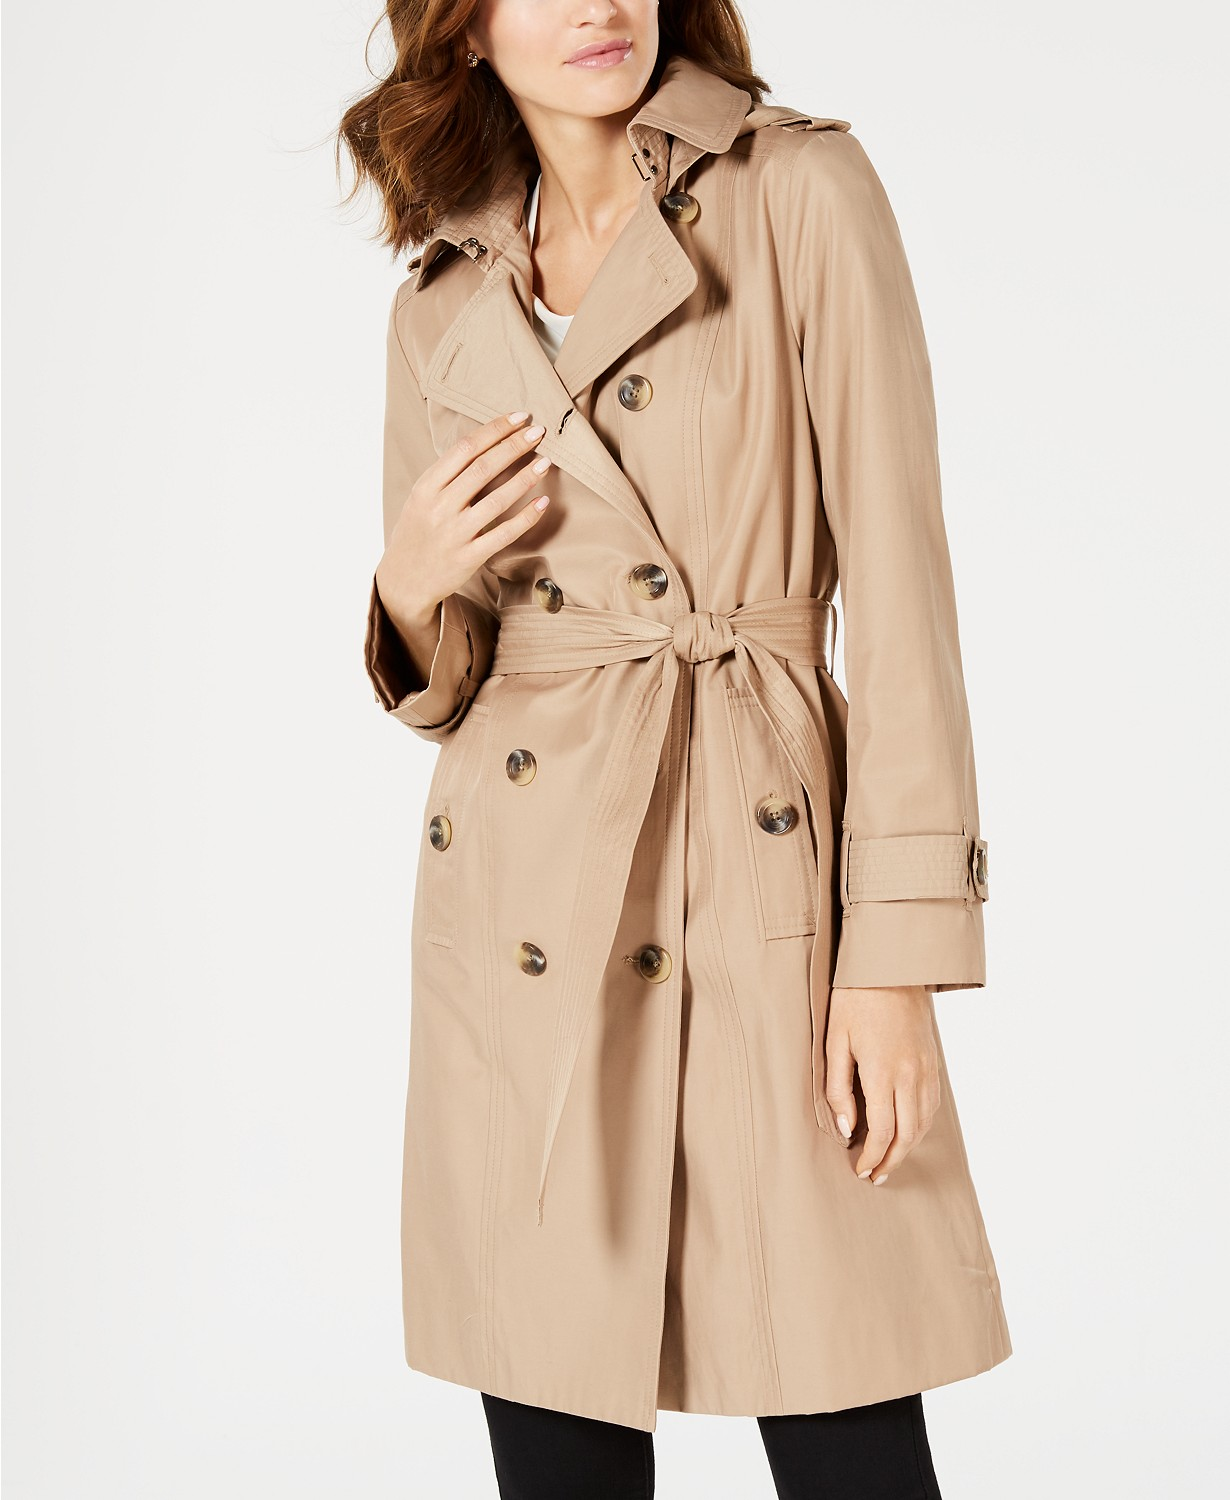 MACYS TODAY FLASH SALE! WOMEN'S COATS & JACKETS ALL 50% OFF!